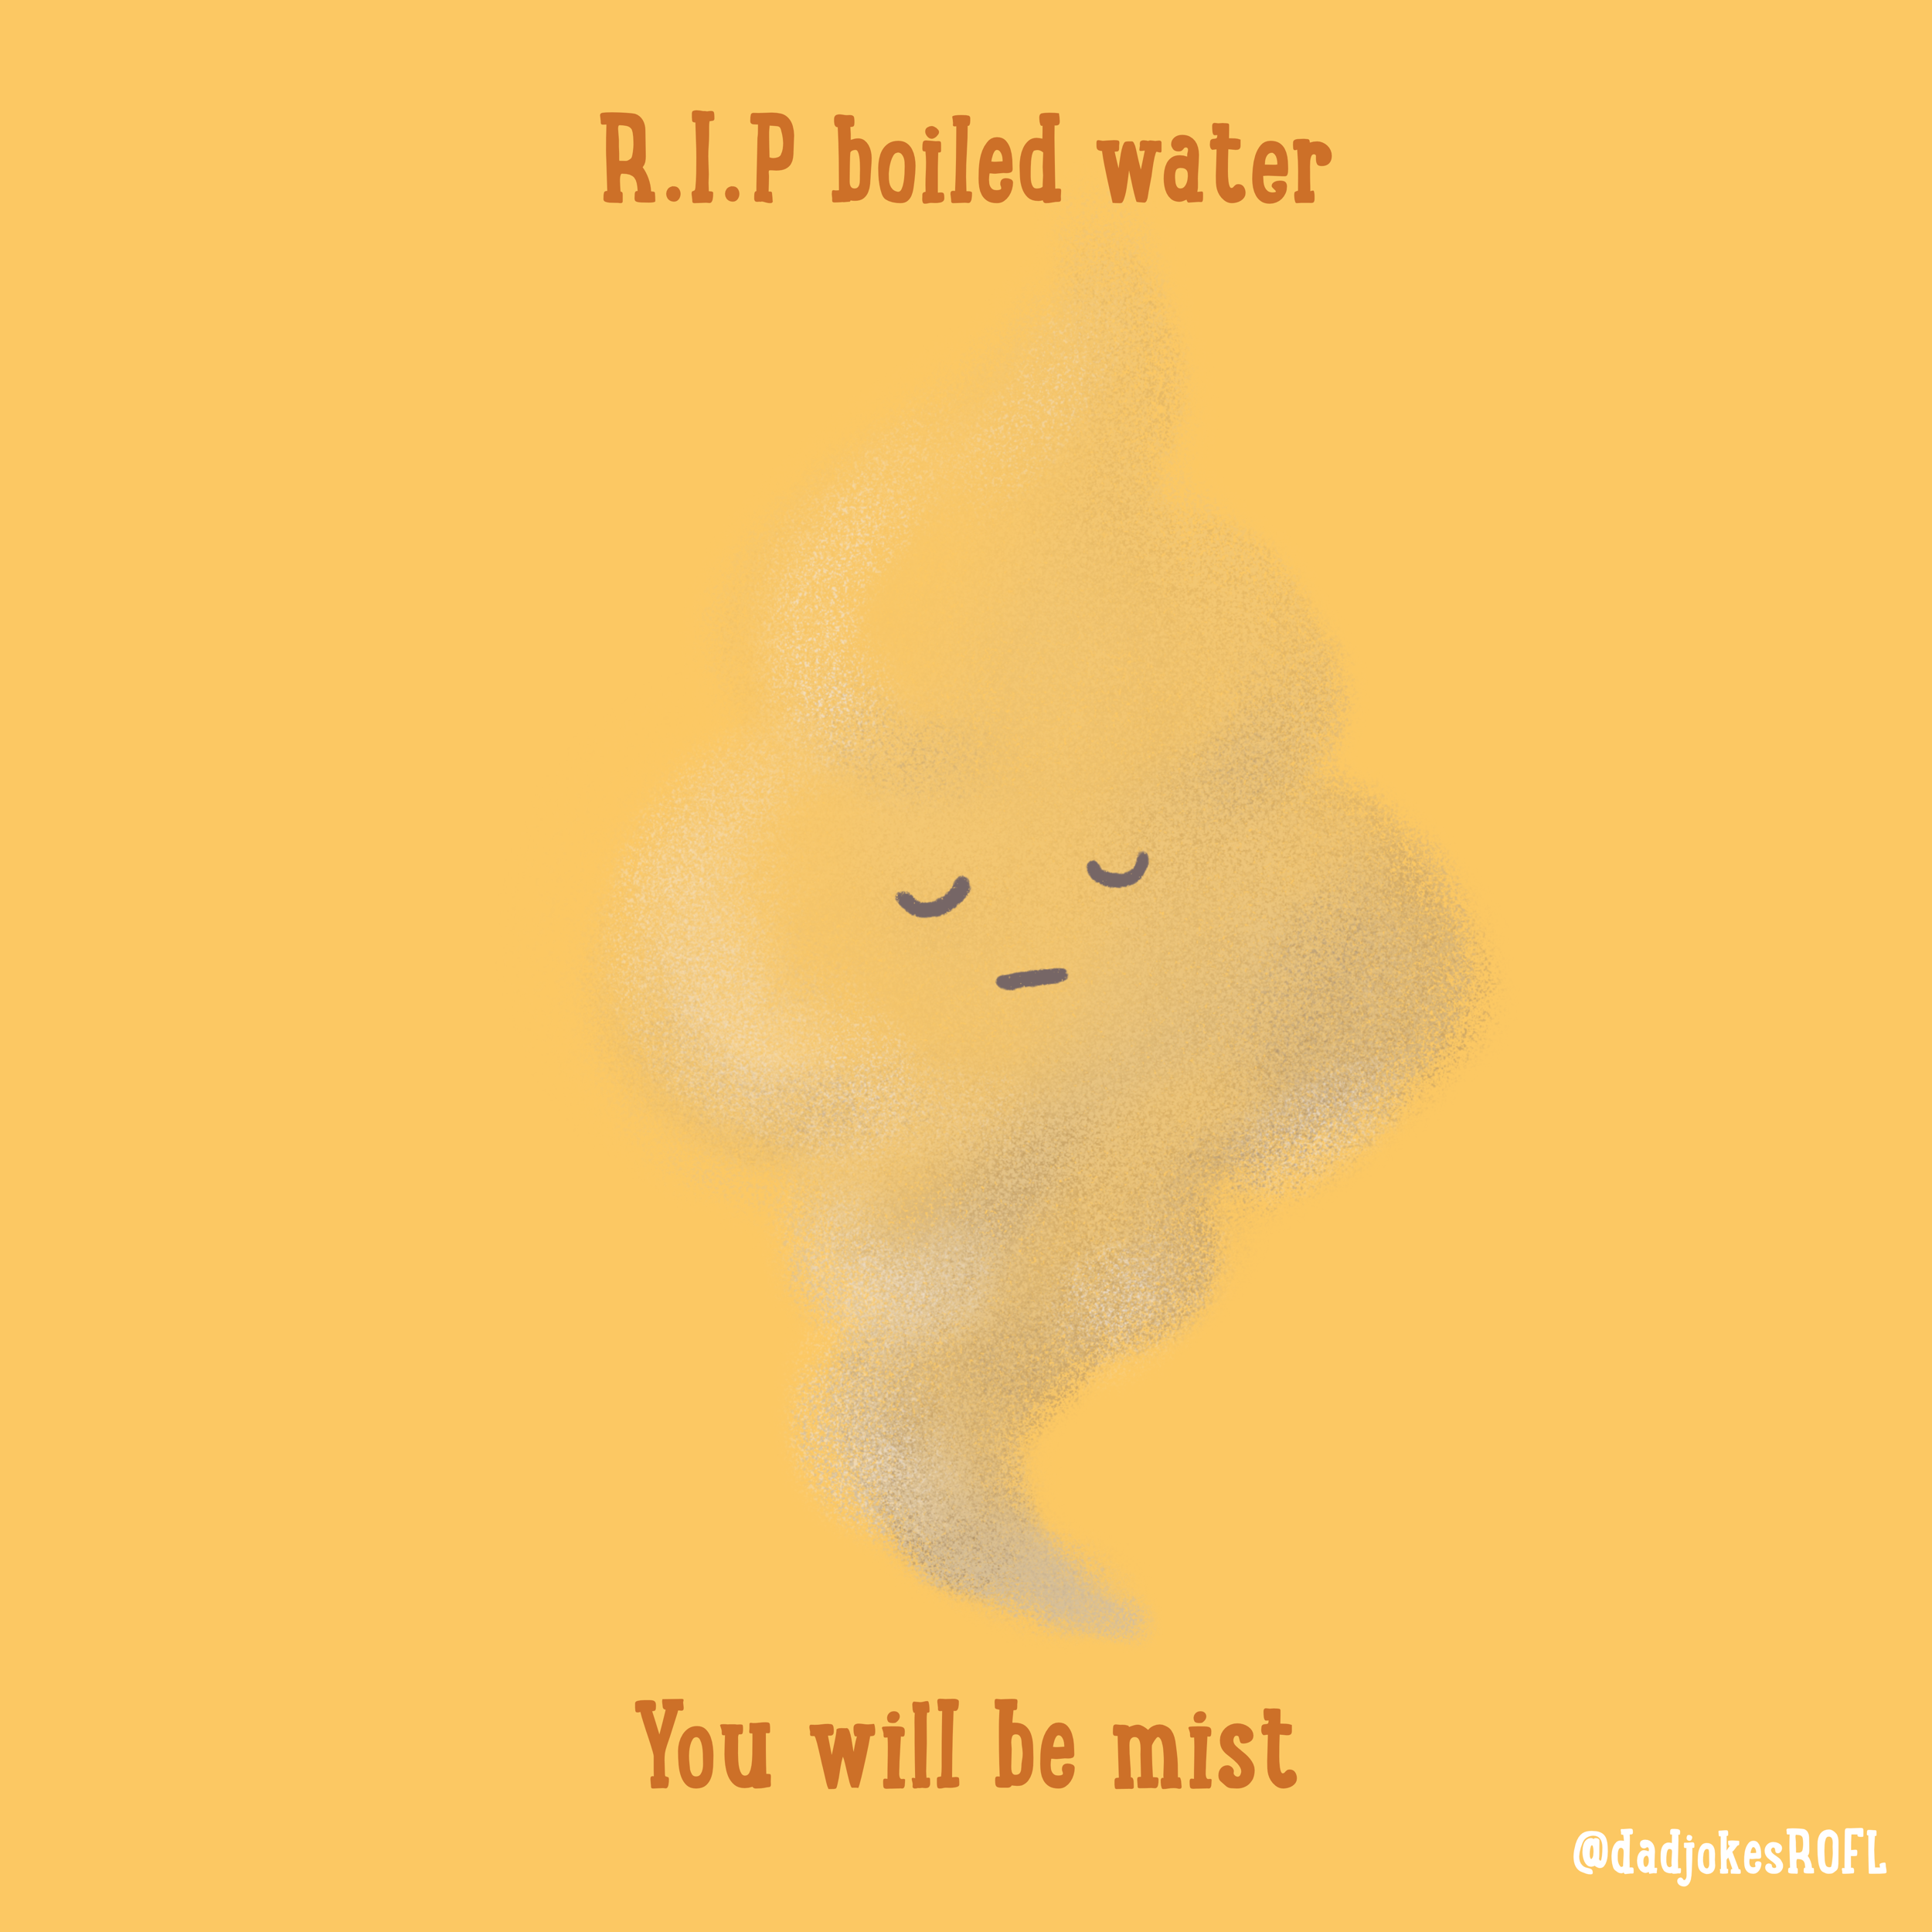 R.I.P boiled water. You will be mist.